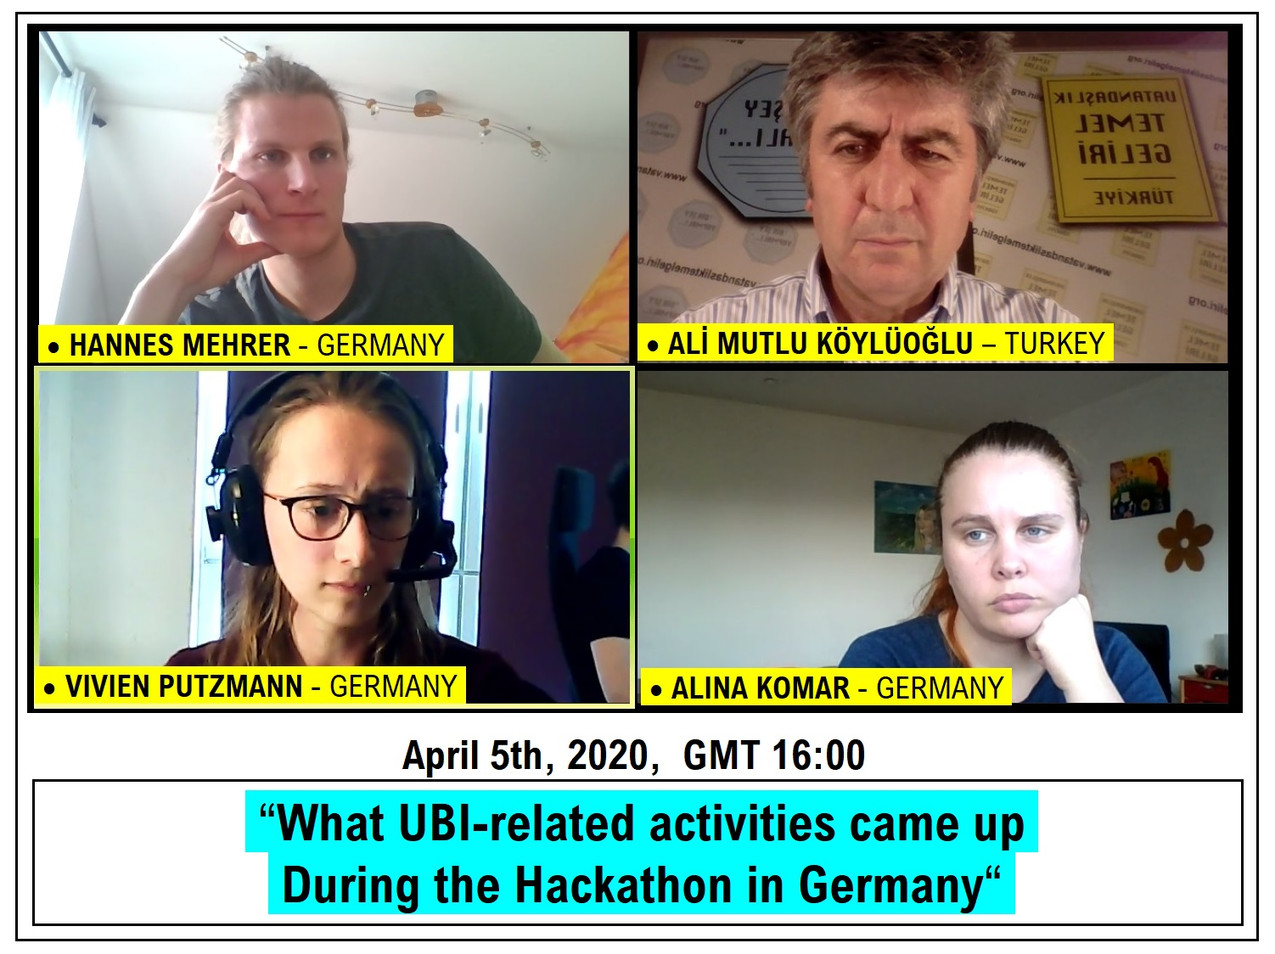 'What UBI-related activities came up during the Hackathon in Germany' - April 5th, 2020